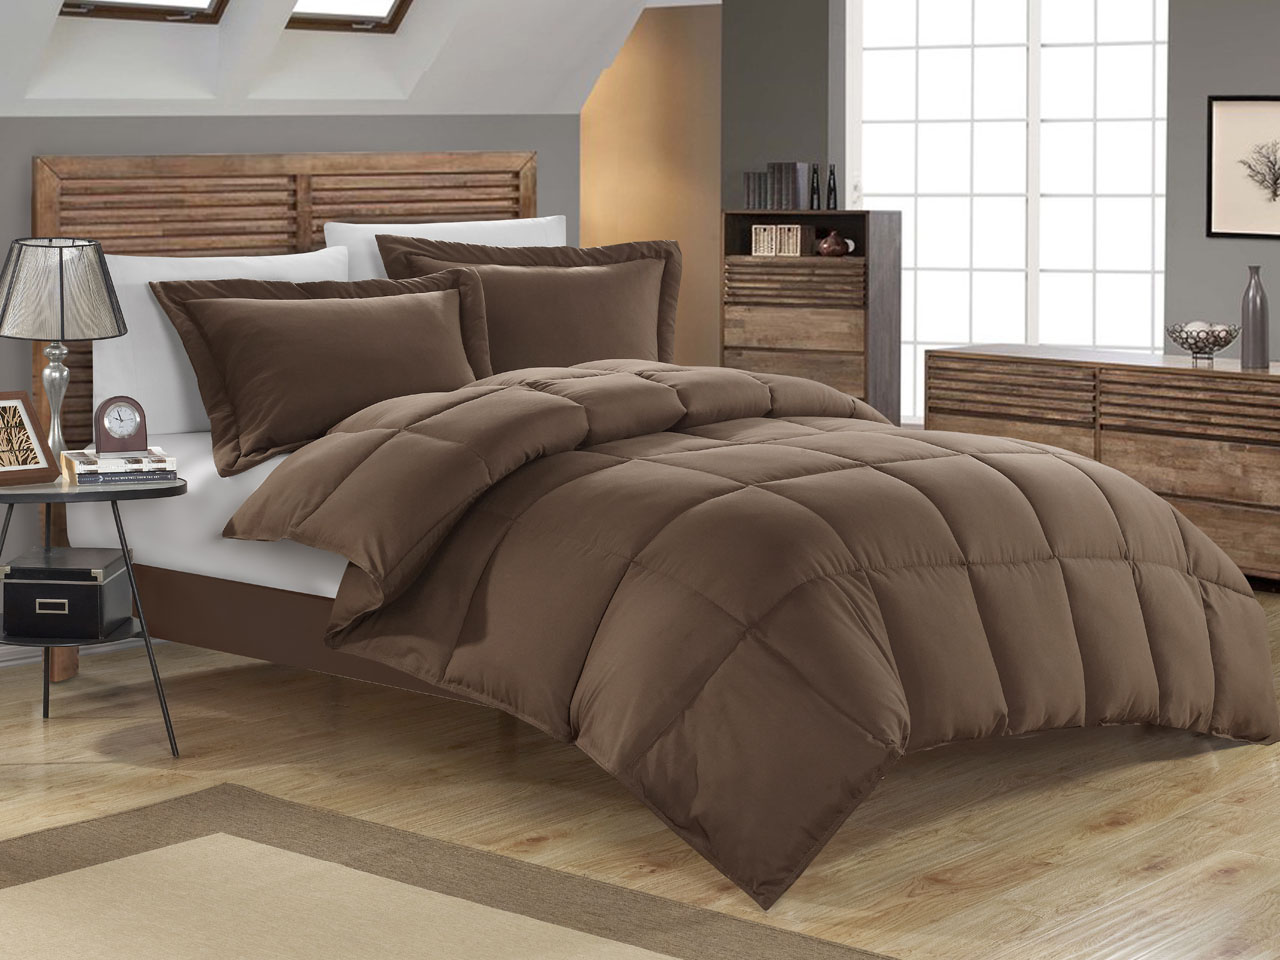 Chocolate down alternative comforter set twin